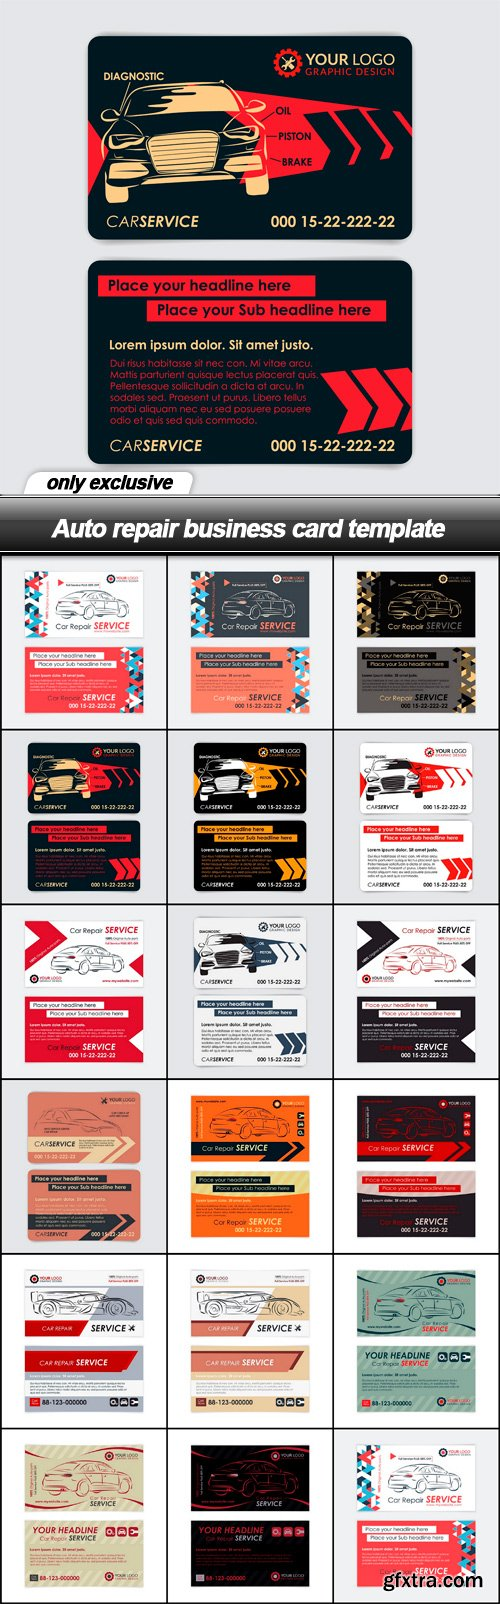 Auto repair business card template - 17 EPS